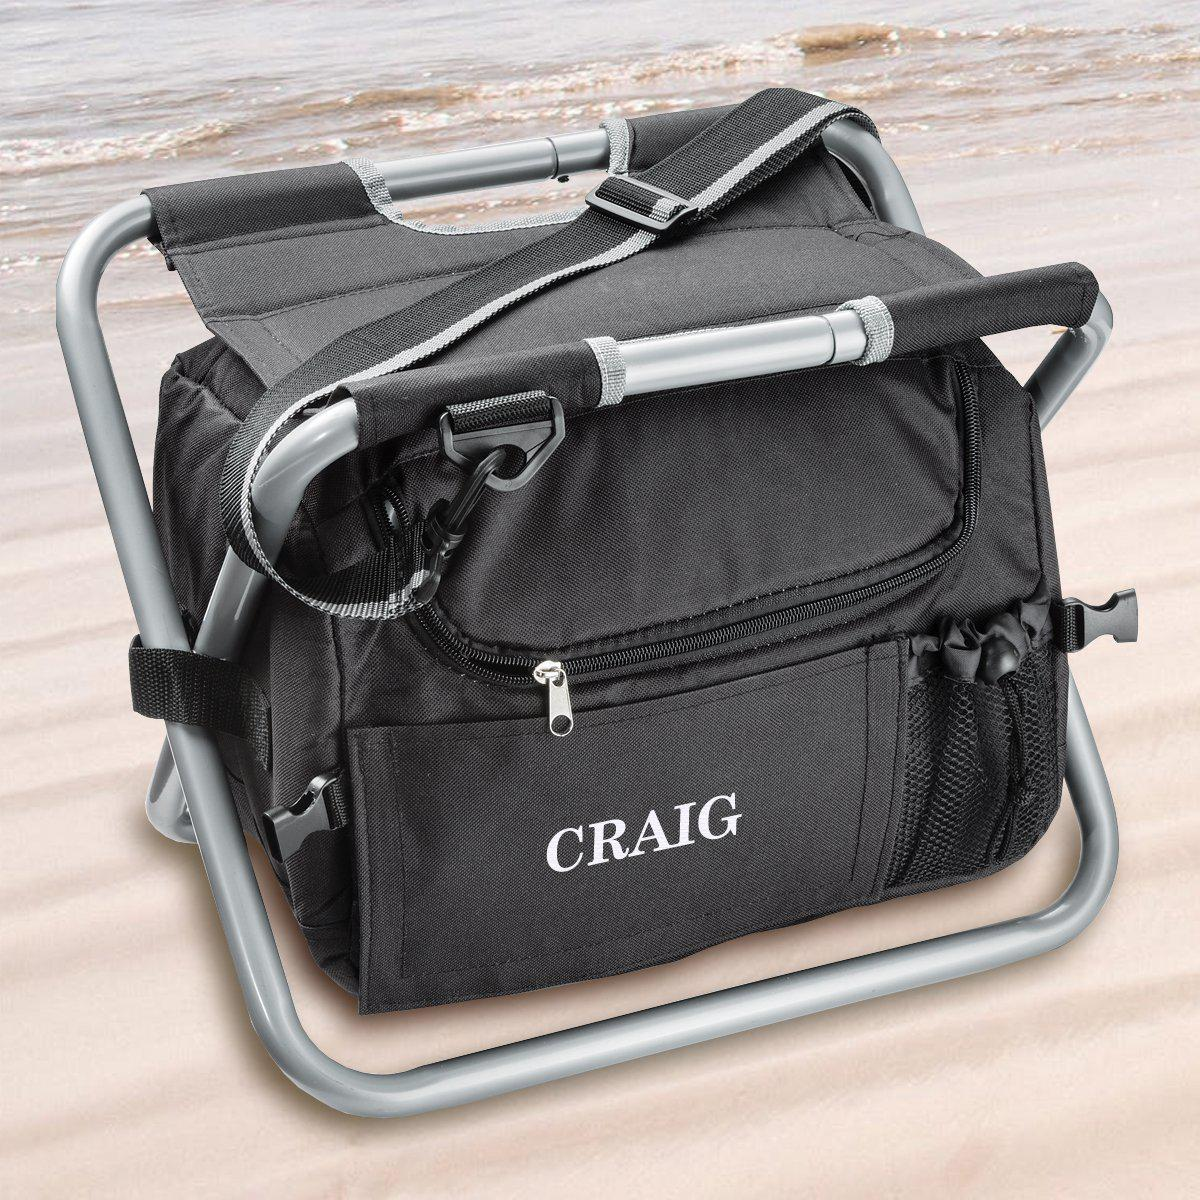 ada5418903 Groomsmen Bags - Duffle Bags   Luggage for Groomsmen